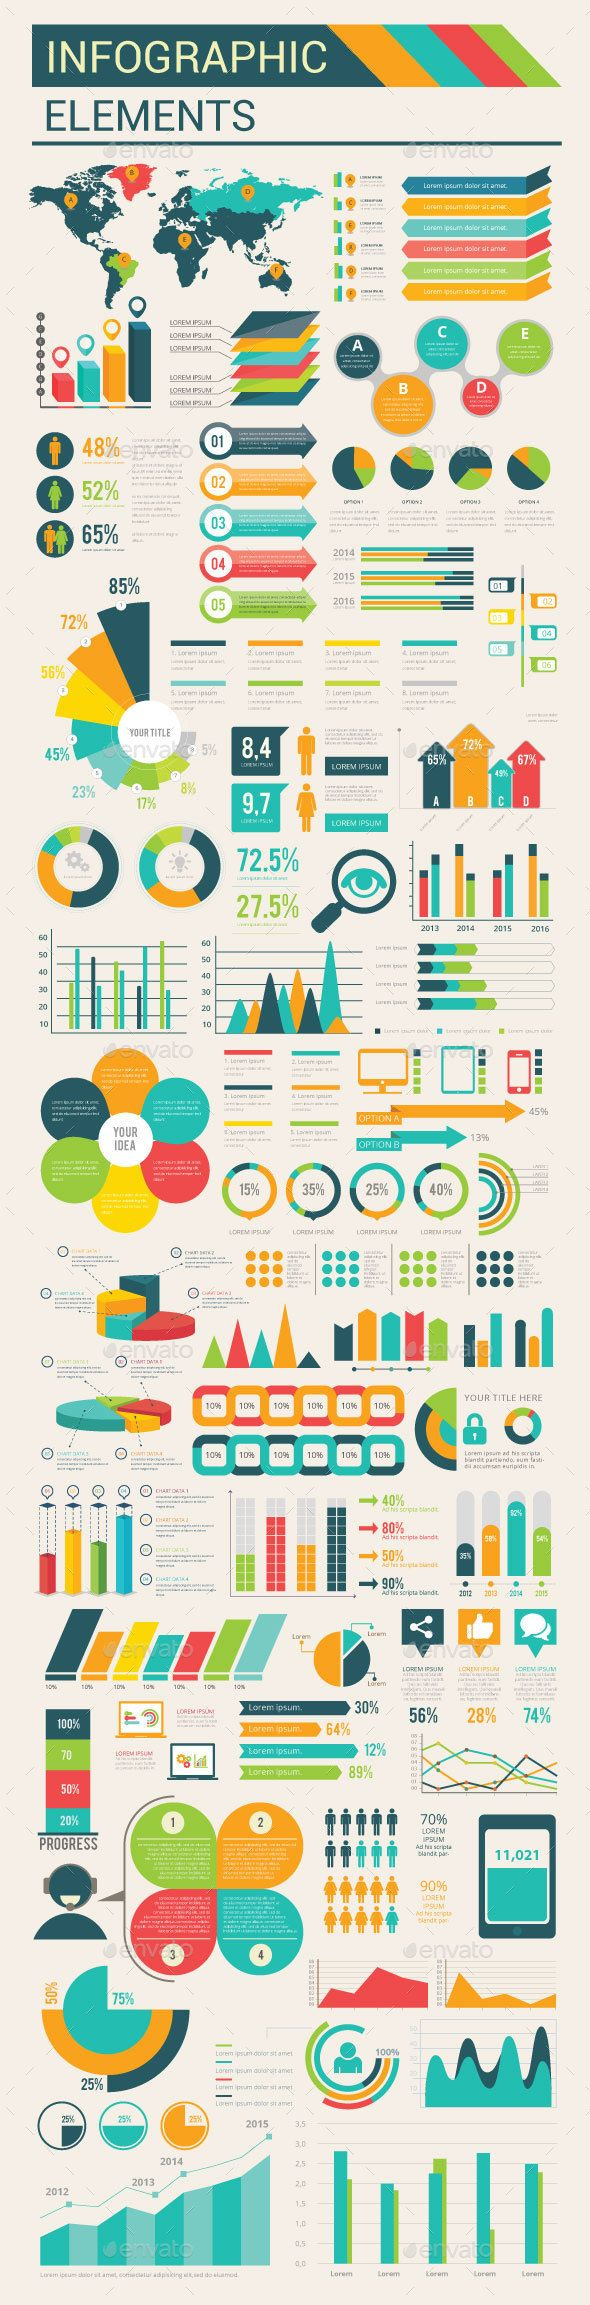 Infographic Flat Elements Template Vector EPS, AI. Download here: http://graphicriver.net/item/infographic-flat-elements/15208092?ref=ksioks